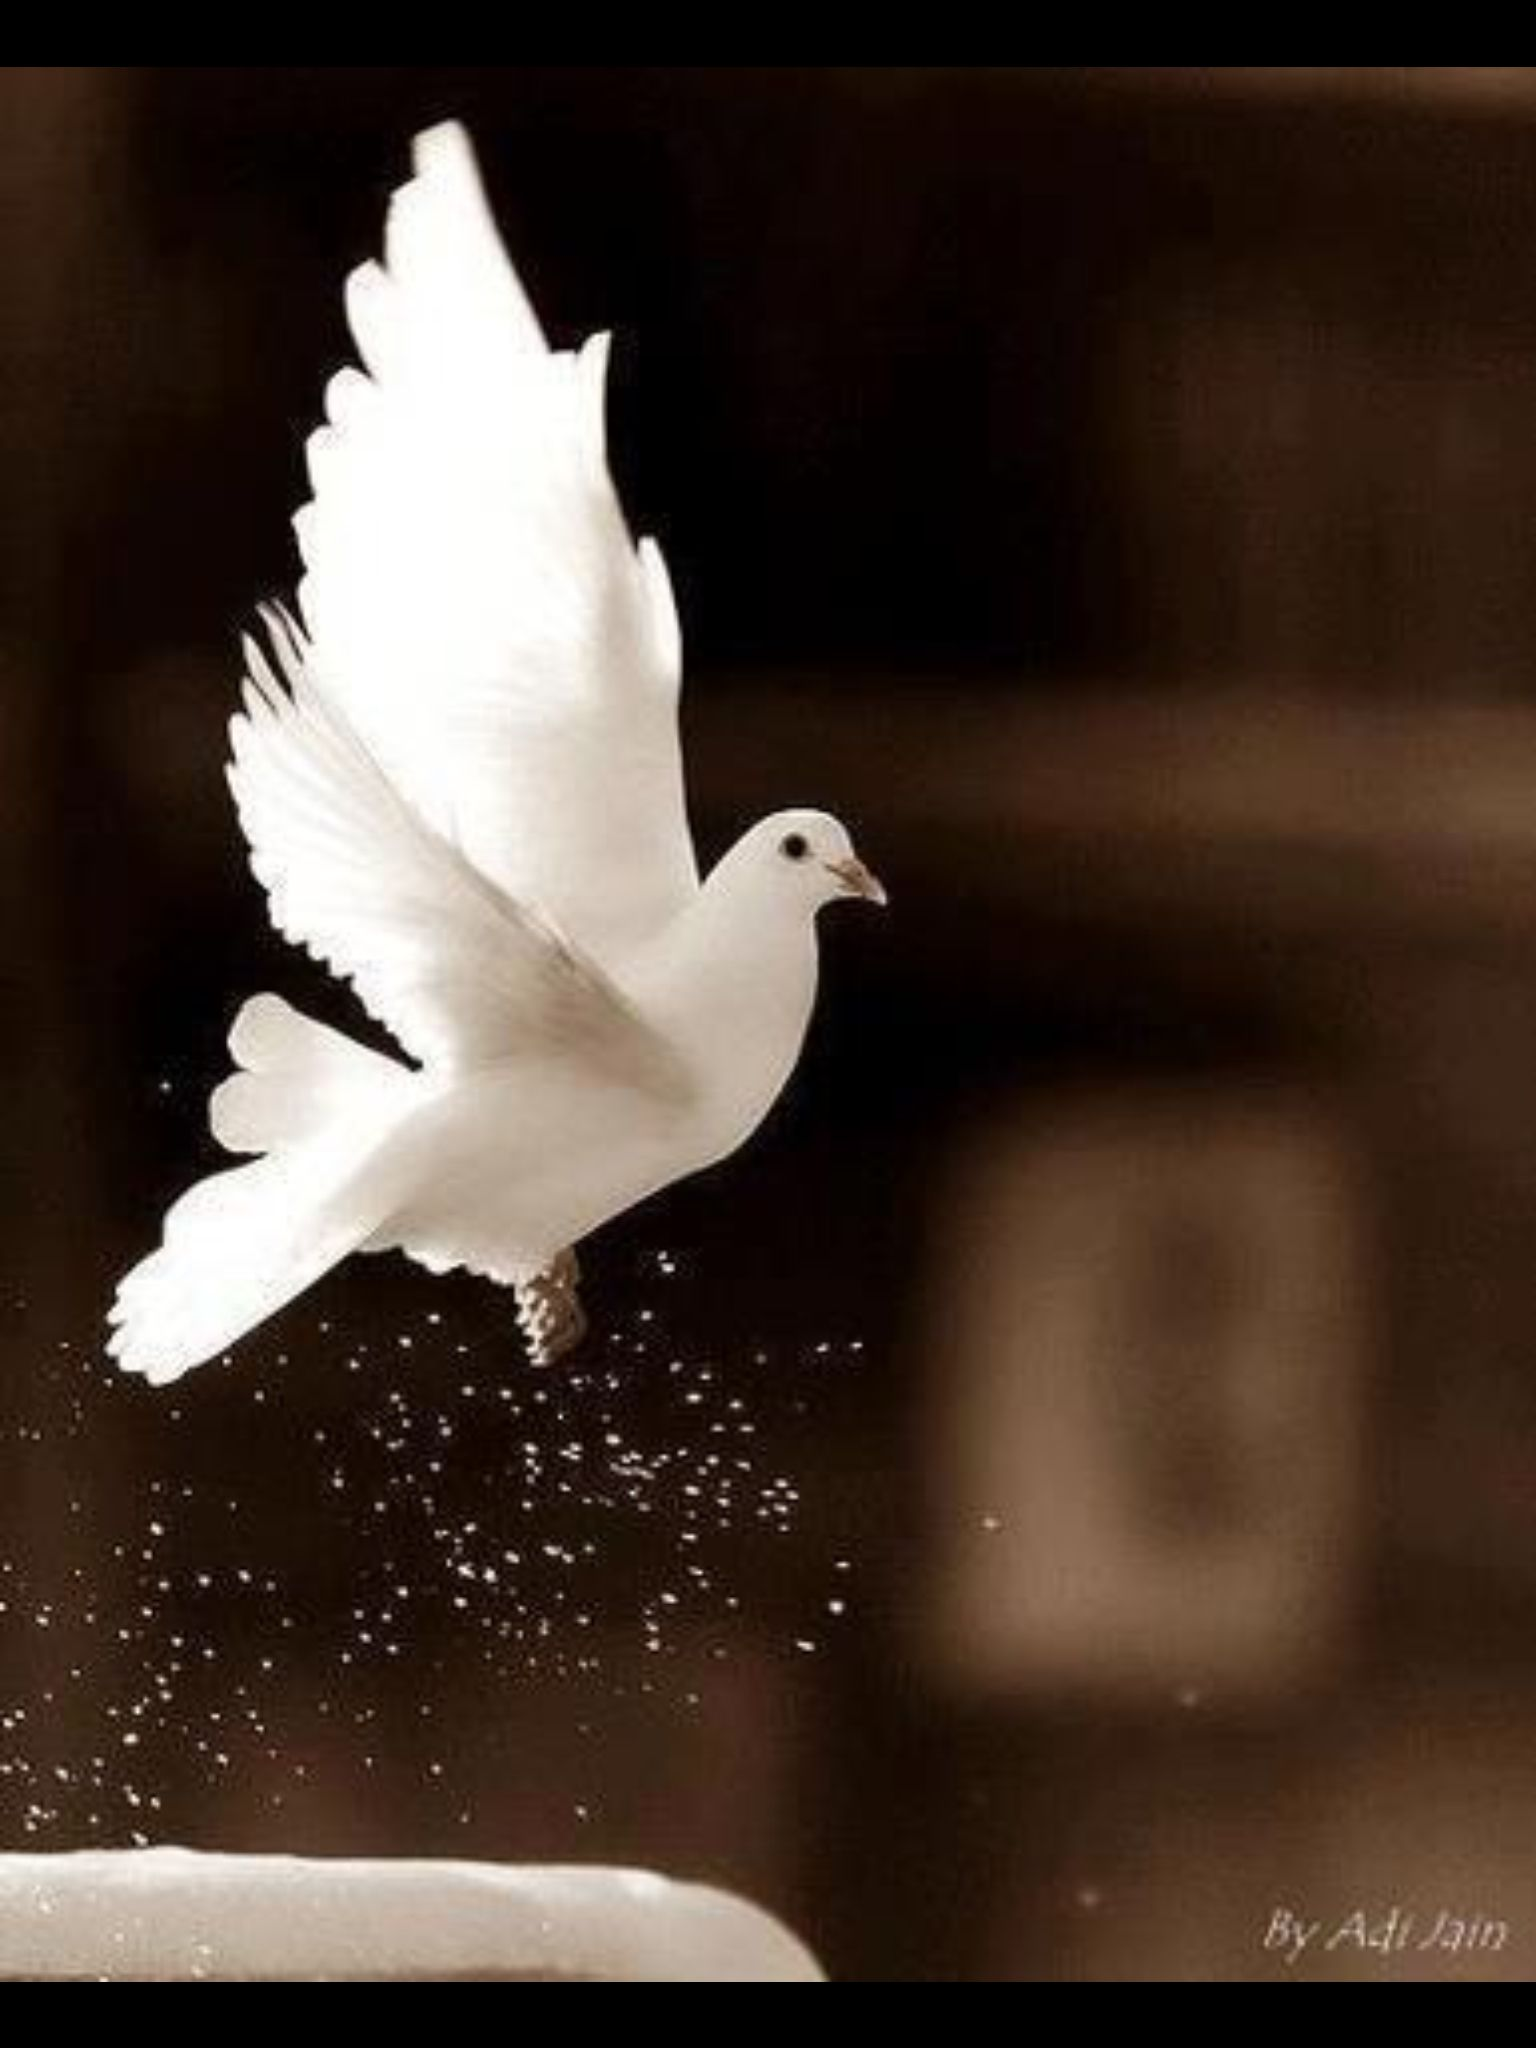 White dove doves pinterest a symbol grace omalley and if you see a white dove its a symbol of love and peace especially after losing someone its a message to you that they are at peace and everything is biocorpaavc